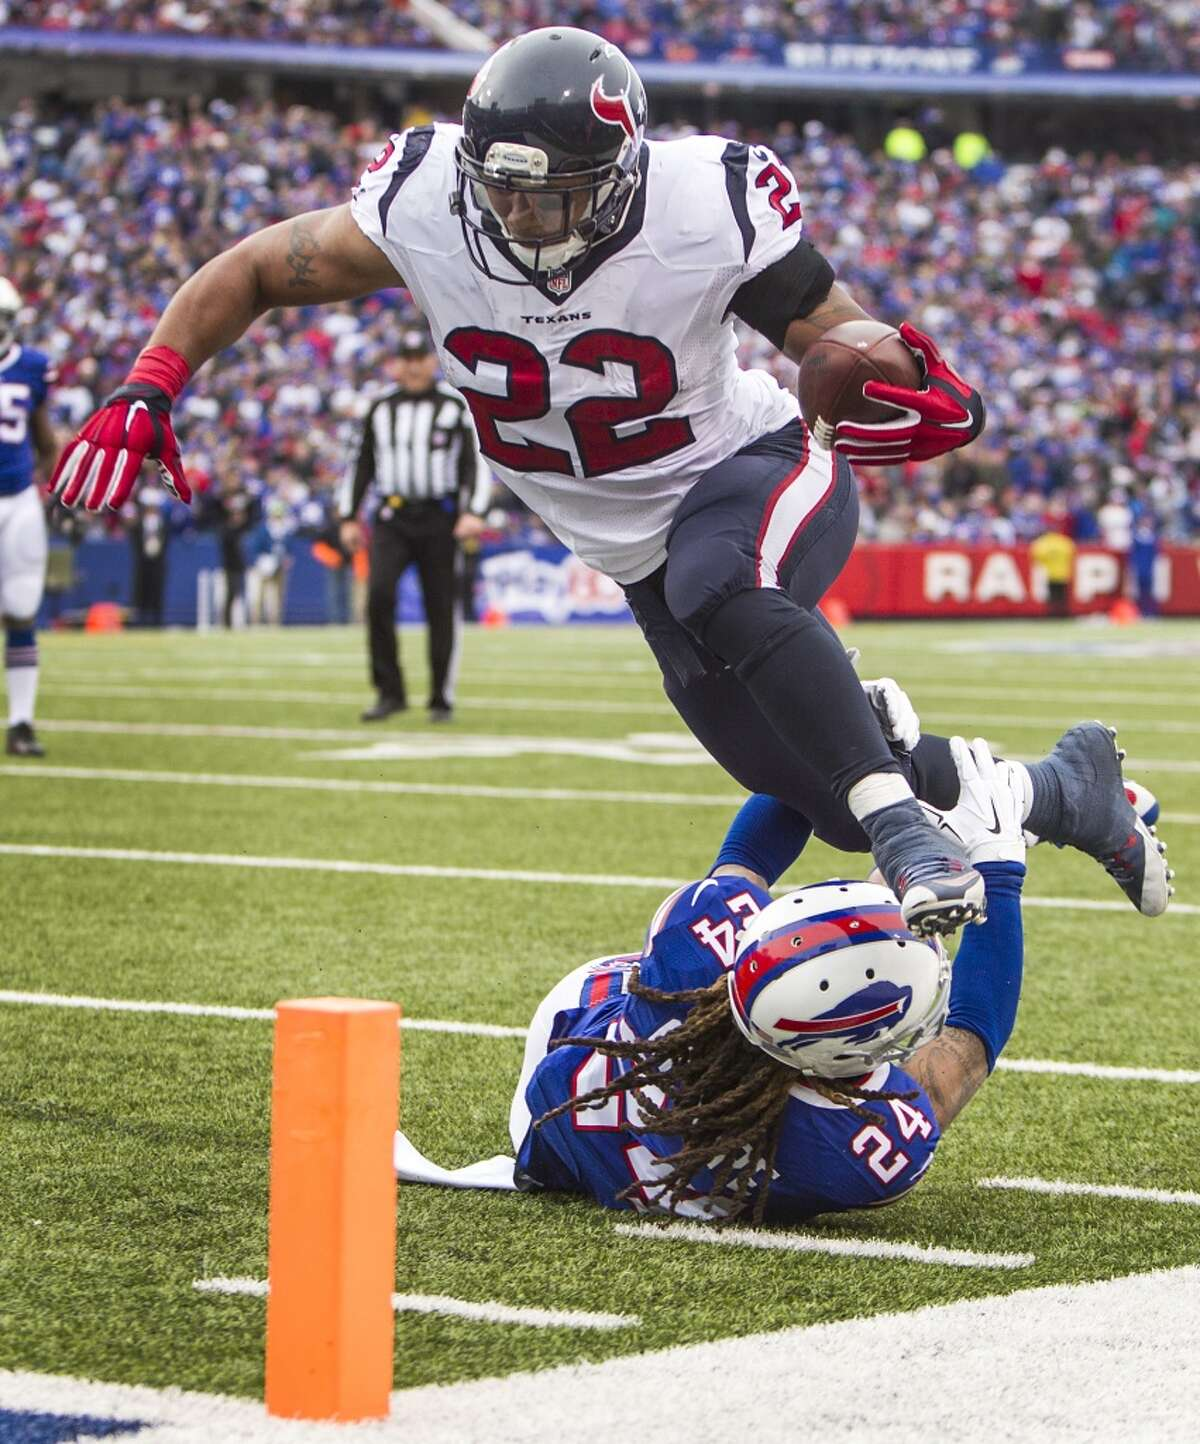 Houston Texans running back Chris Polk (22) jumps over Buffalo Bills cornerback Stephon Gilmore (24) for an 11-yard touchdown reception during the second quarter of an NFL football game against the Buffalo Bills at Ralph Wilson Stadium on Sunday, Dec. 6, 2015, in Orchard Park, N.Y. ( Brett Coomer / Houston Chronicle )